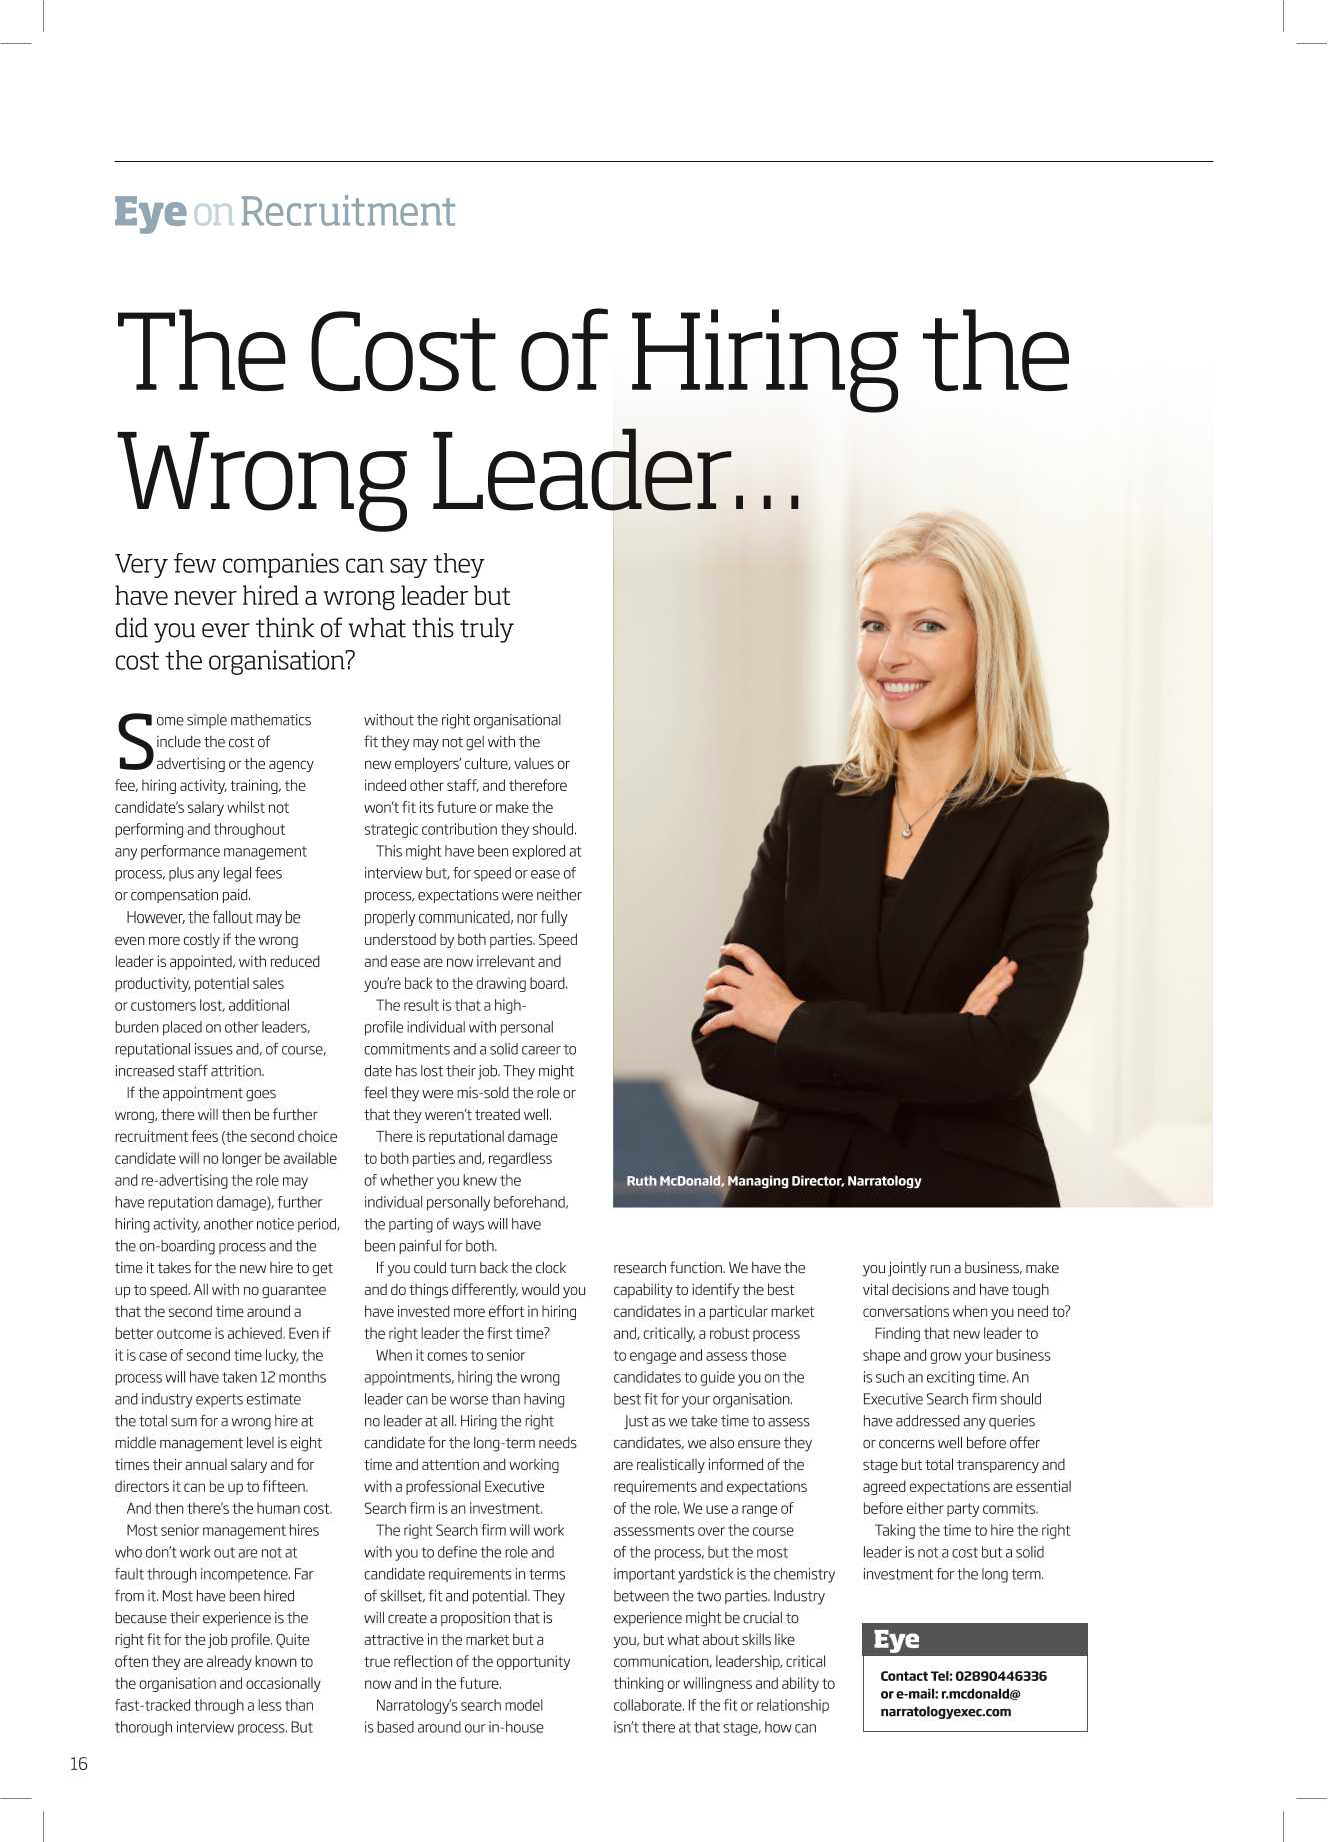 The Cost of Hiring the Wrong Leader